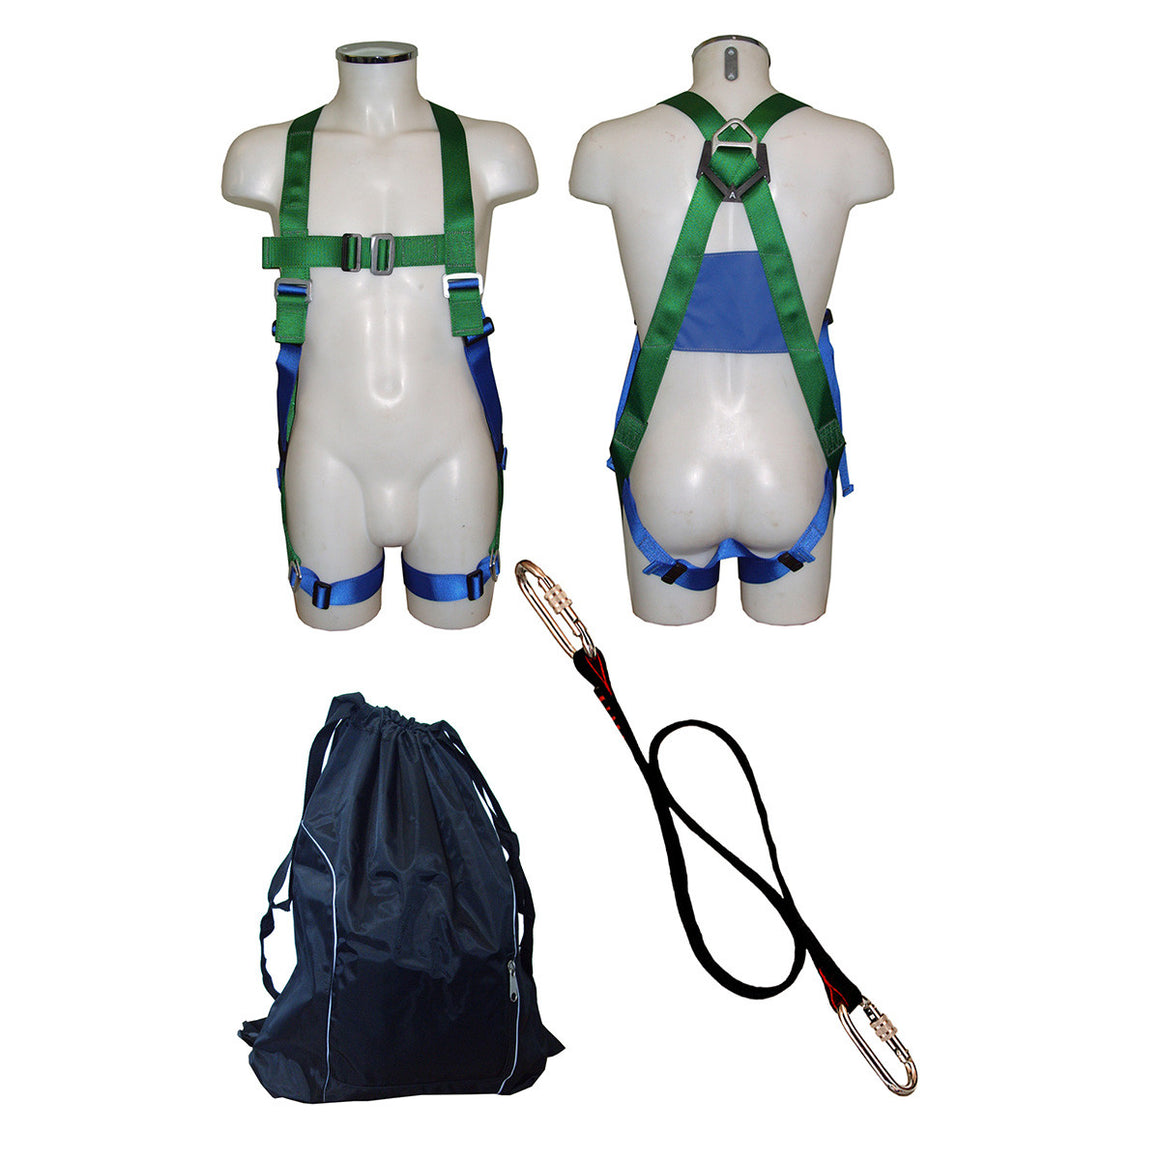 AB10RST - Access Platform Safety Harness Kit